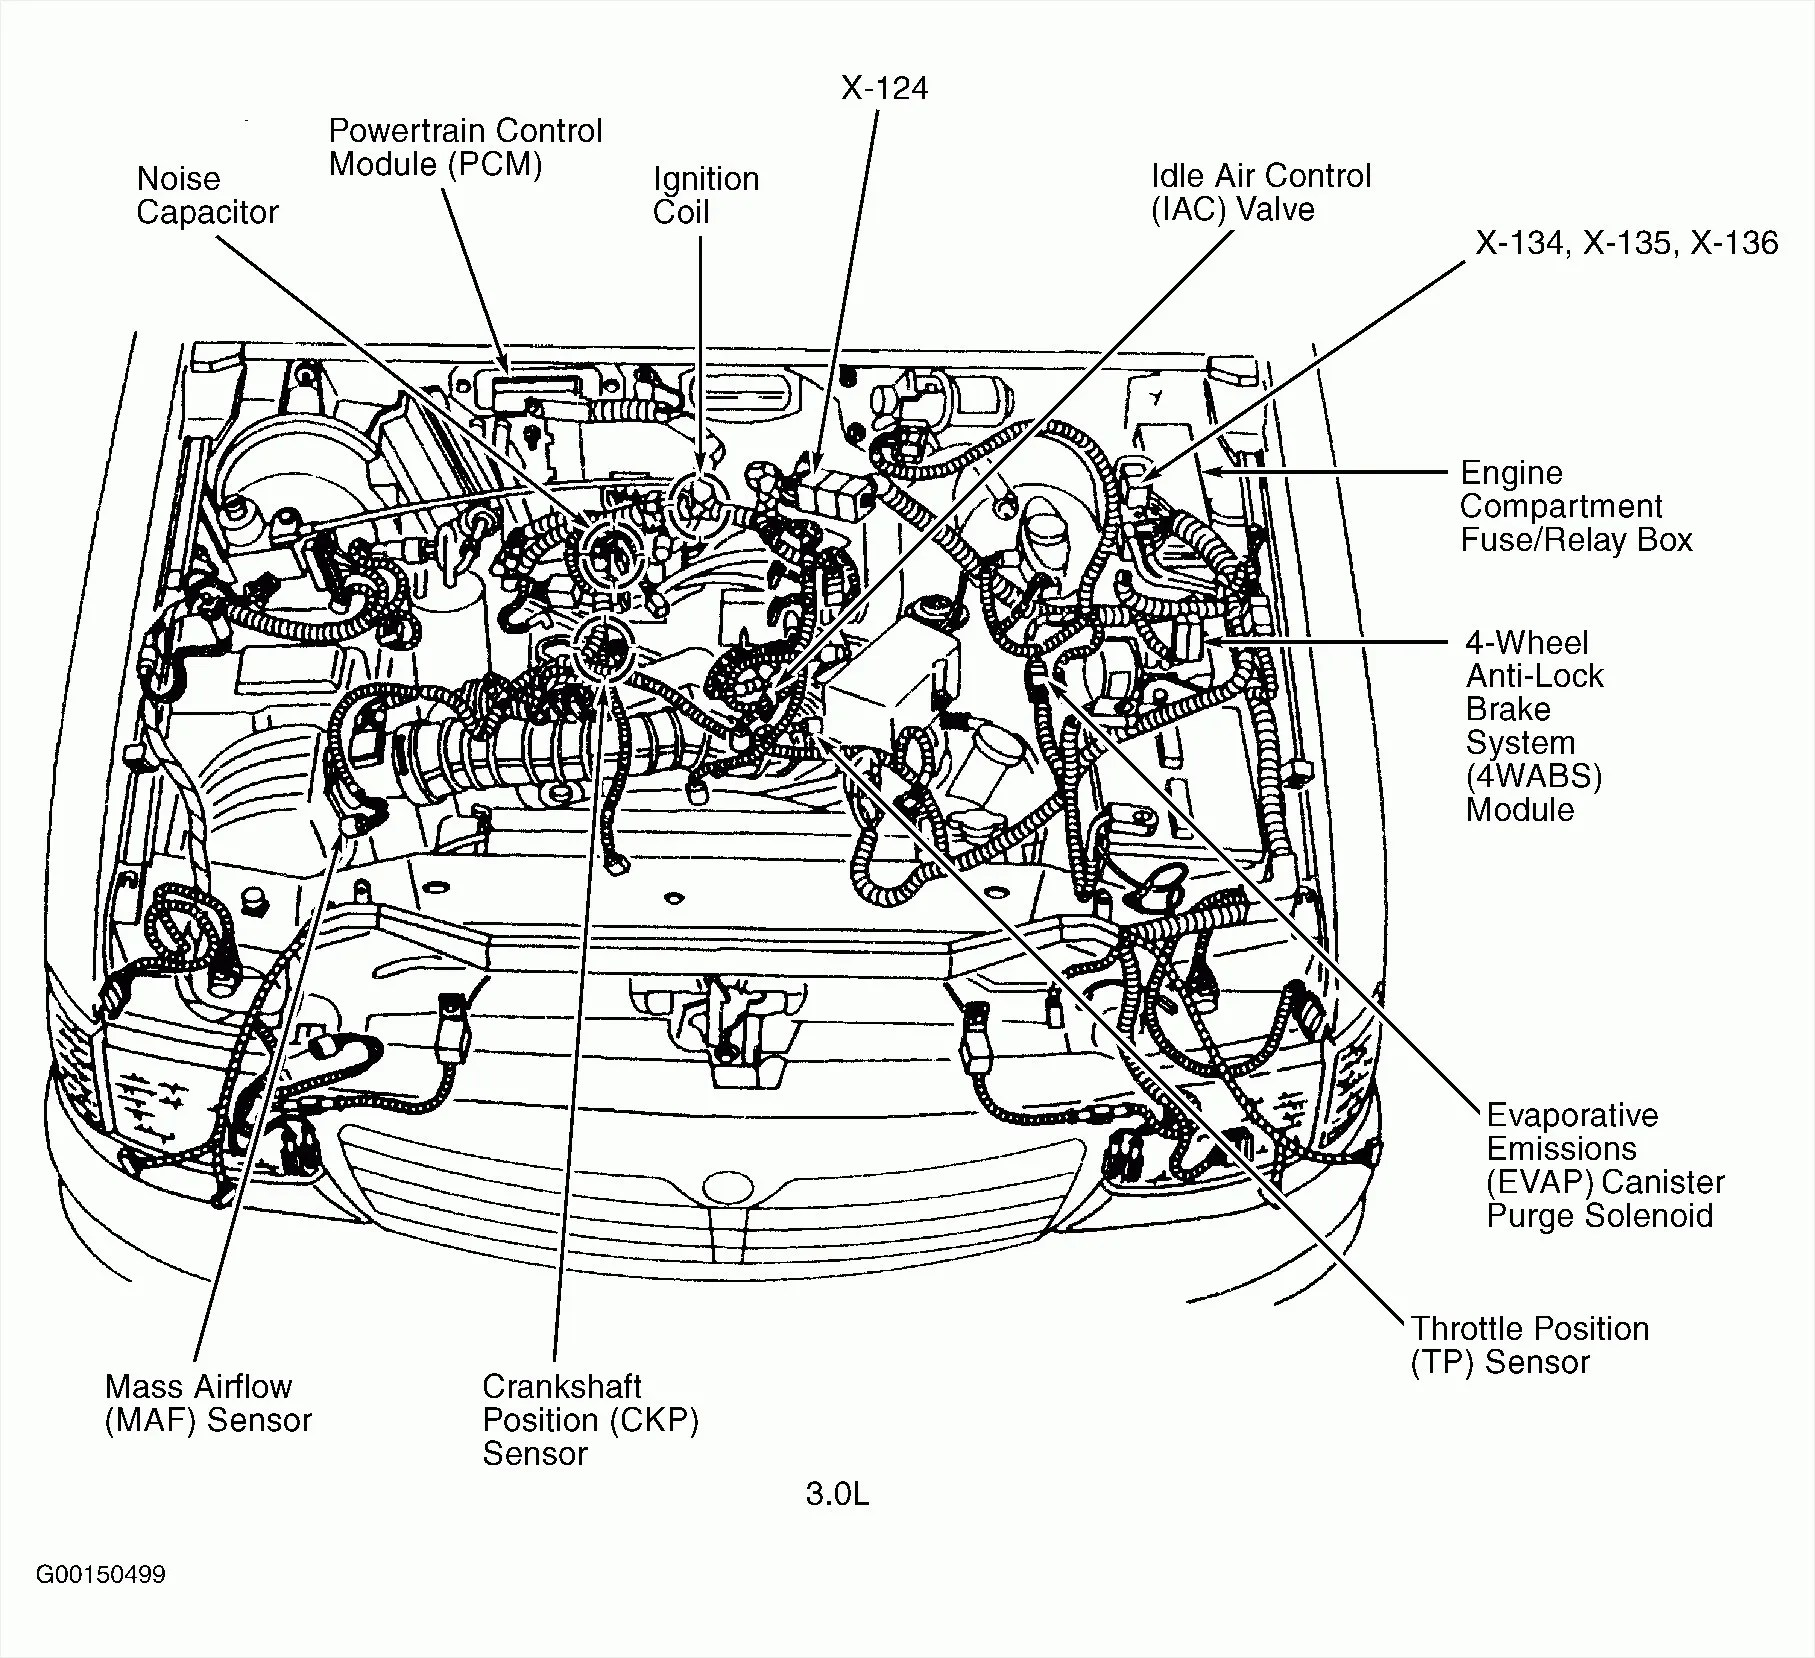 hight resolution of 97 chevy suburban engine diagram wiring diagram imp 97 chevy tahoe engine diagram 97 chevy engine diagram